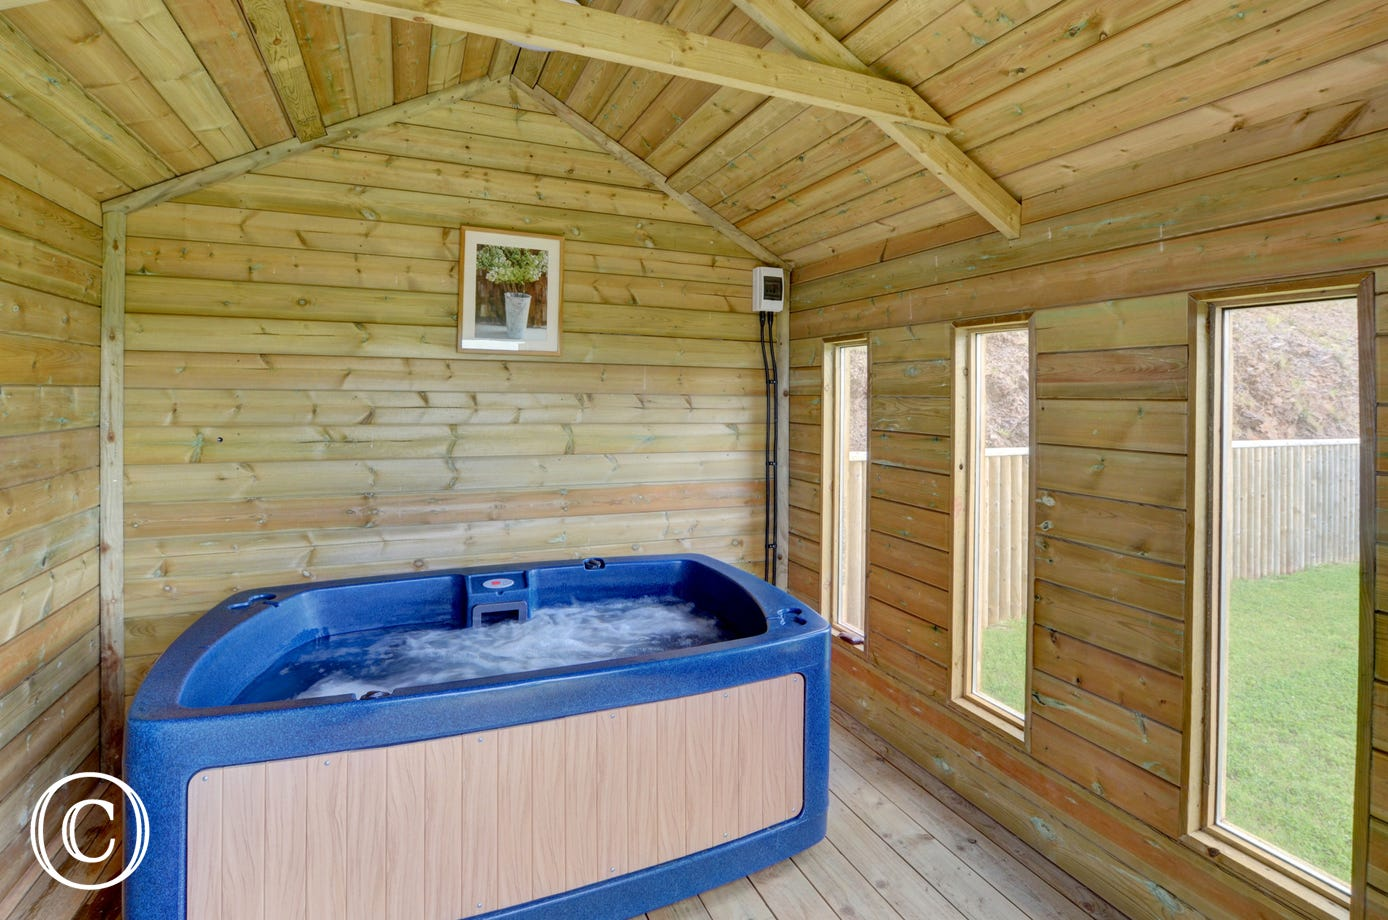 Your own private hot tub in an adjacent summerhouse to provide that extra special bit of luxury